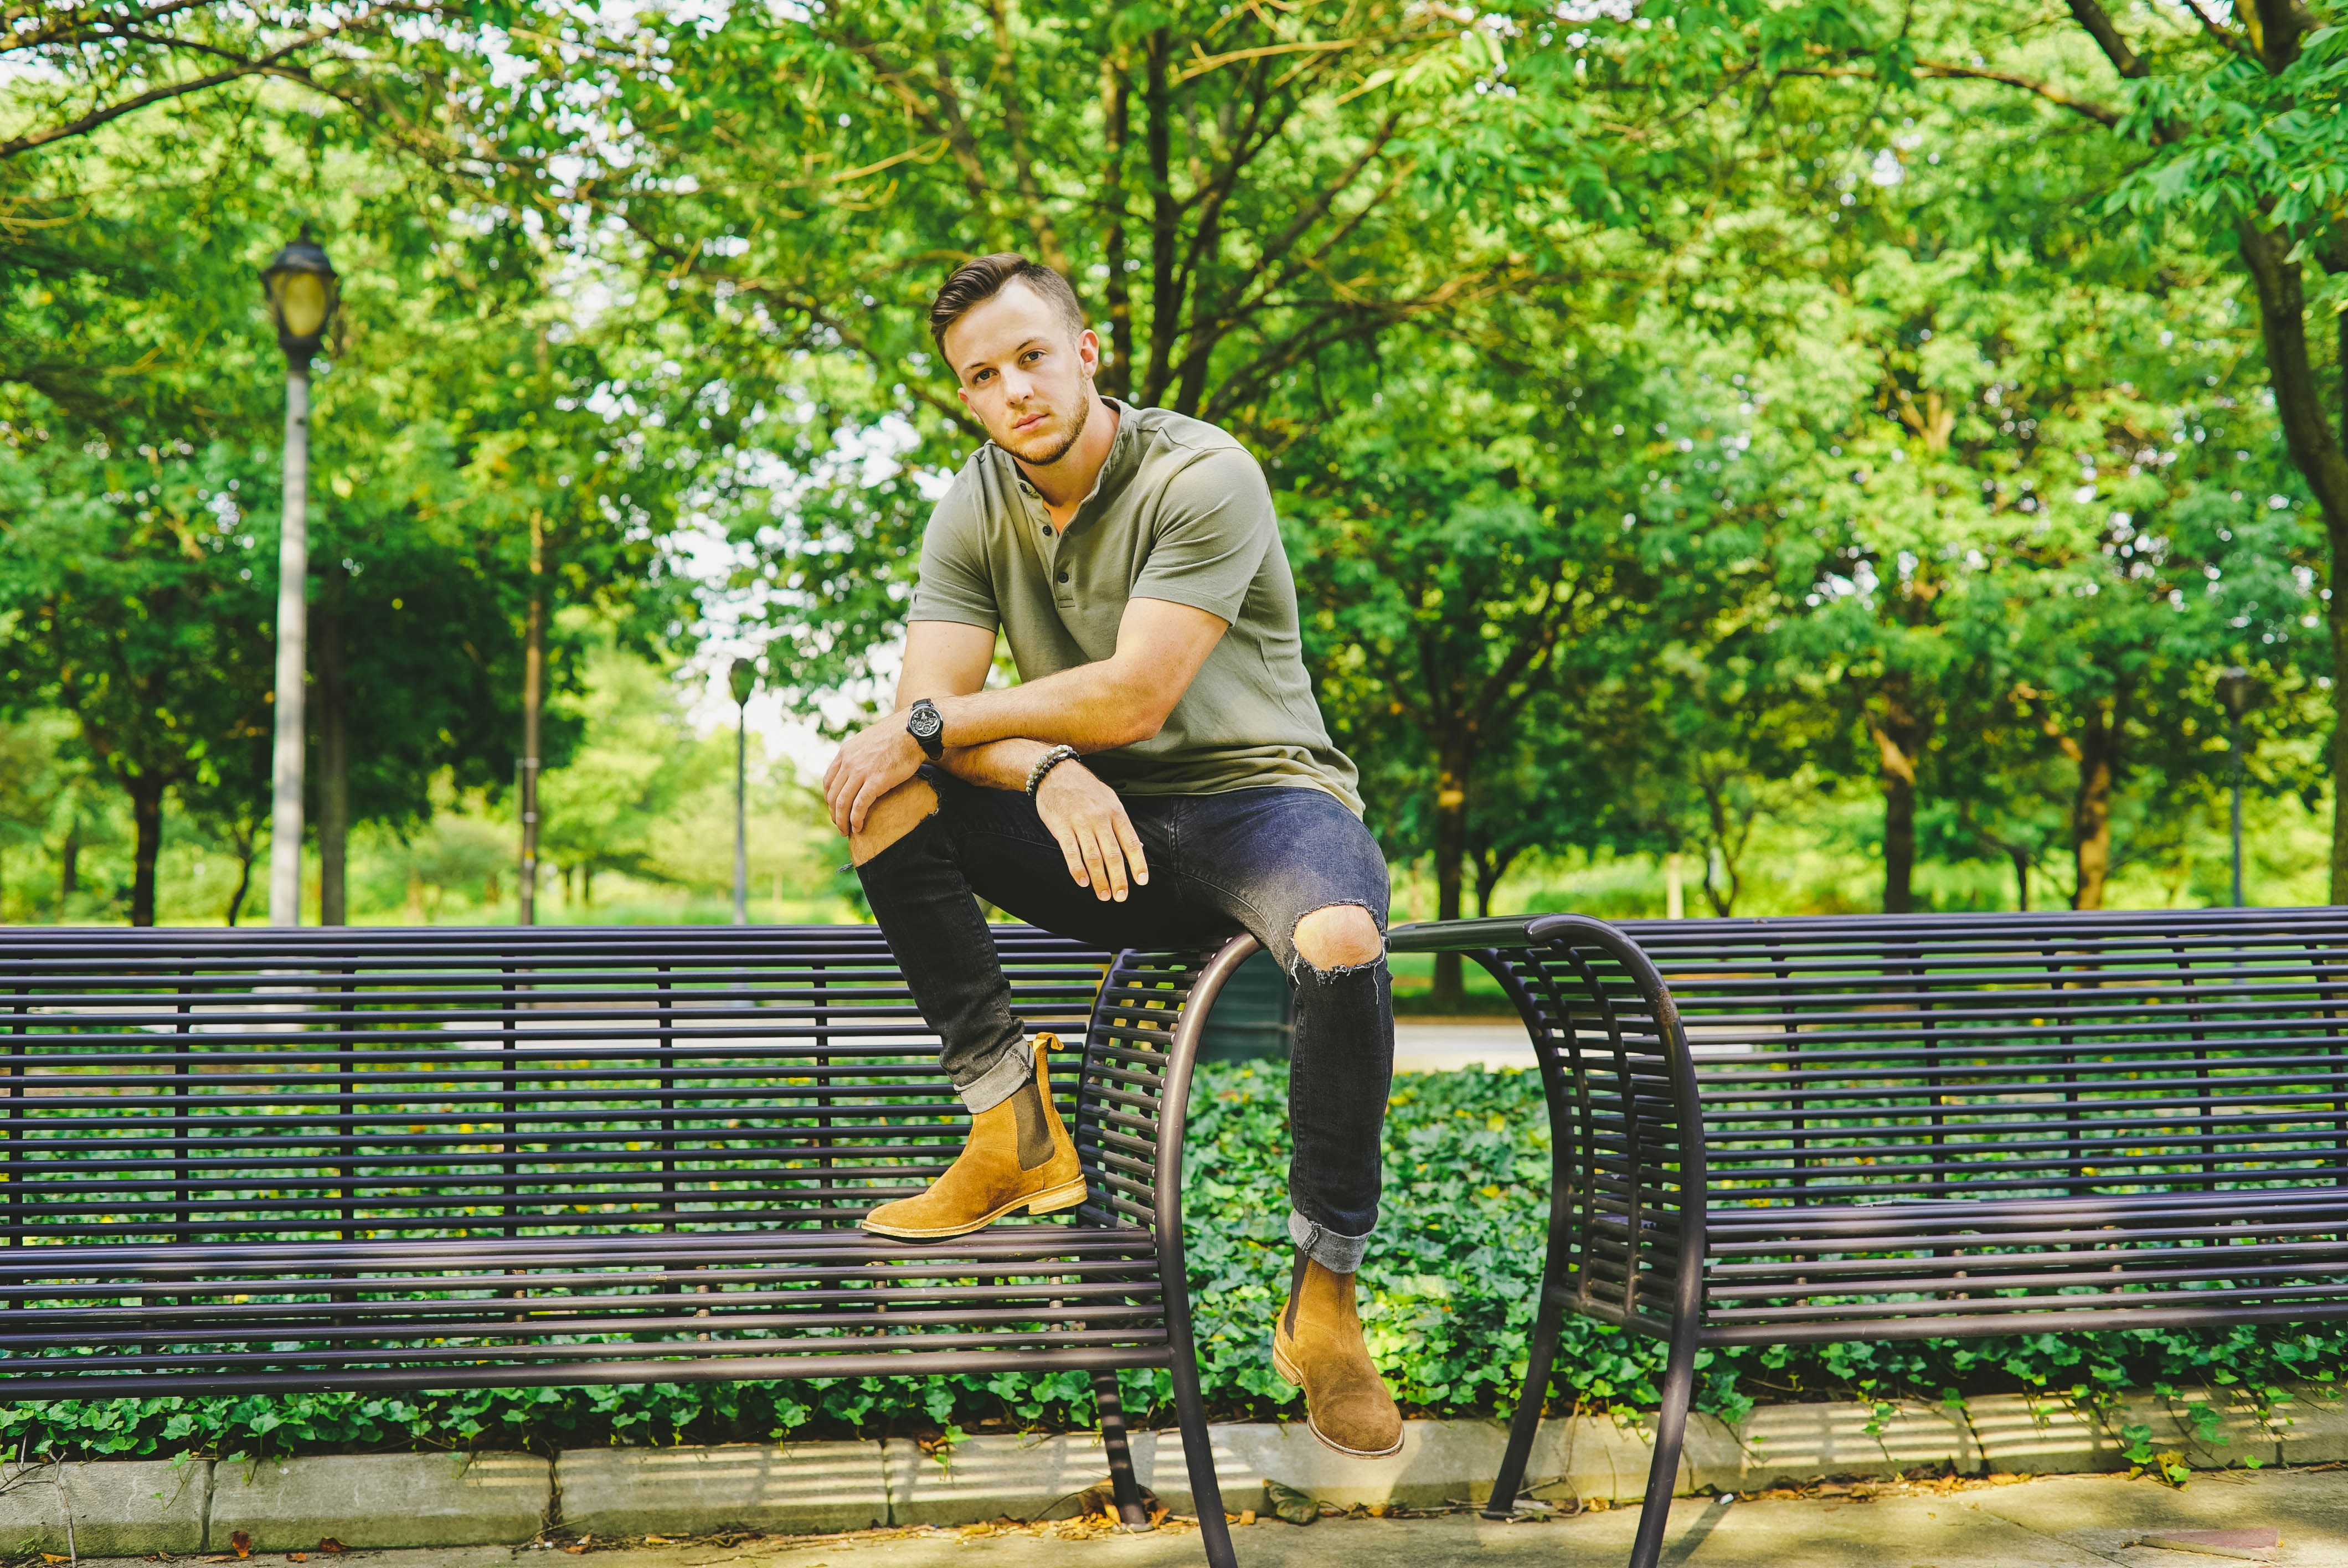 Young man in ripped jeans sitting on an empty park bench